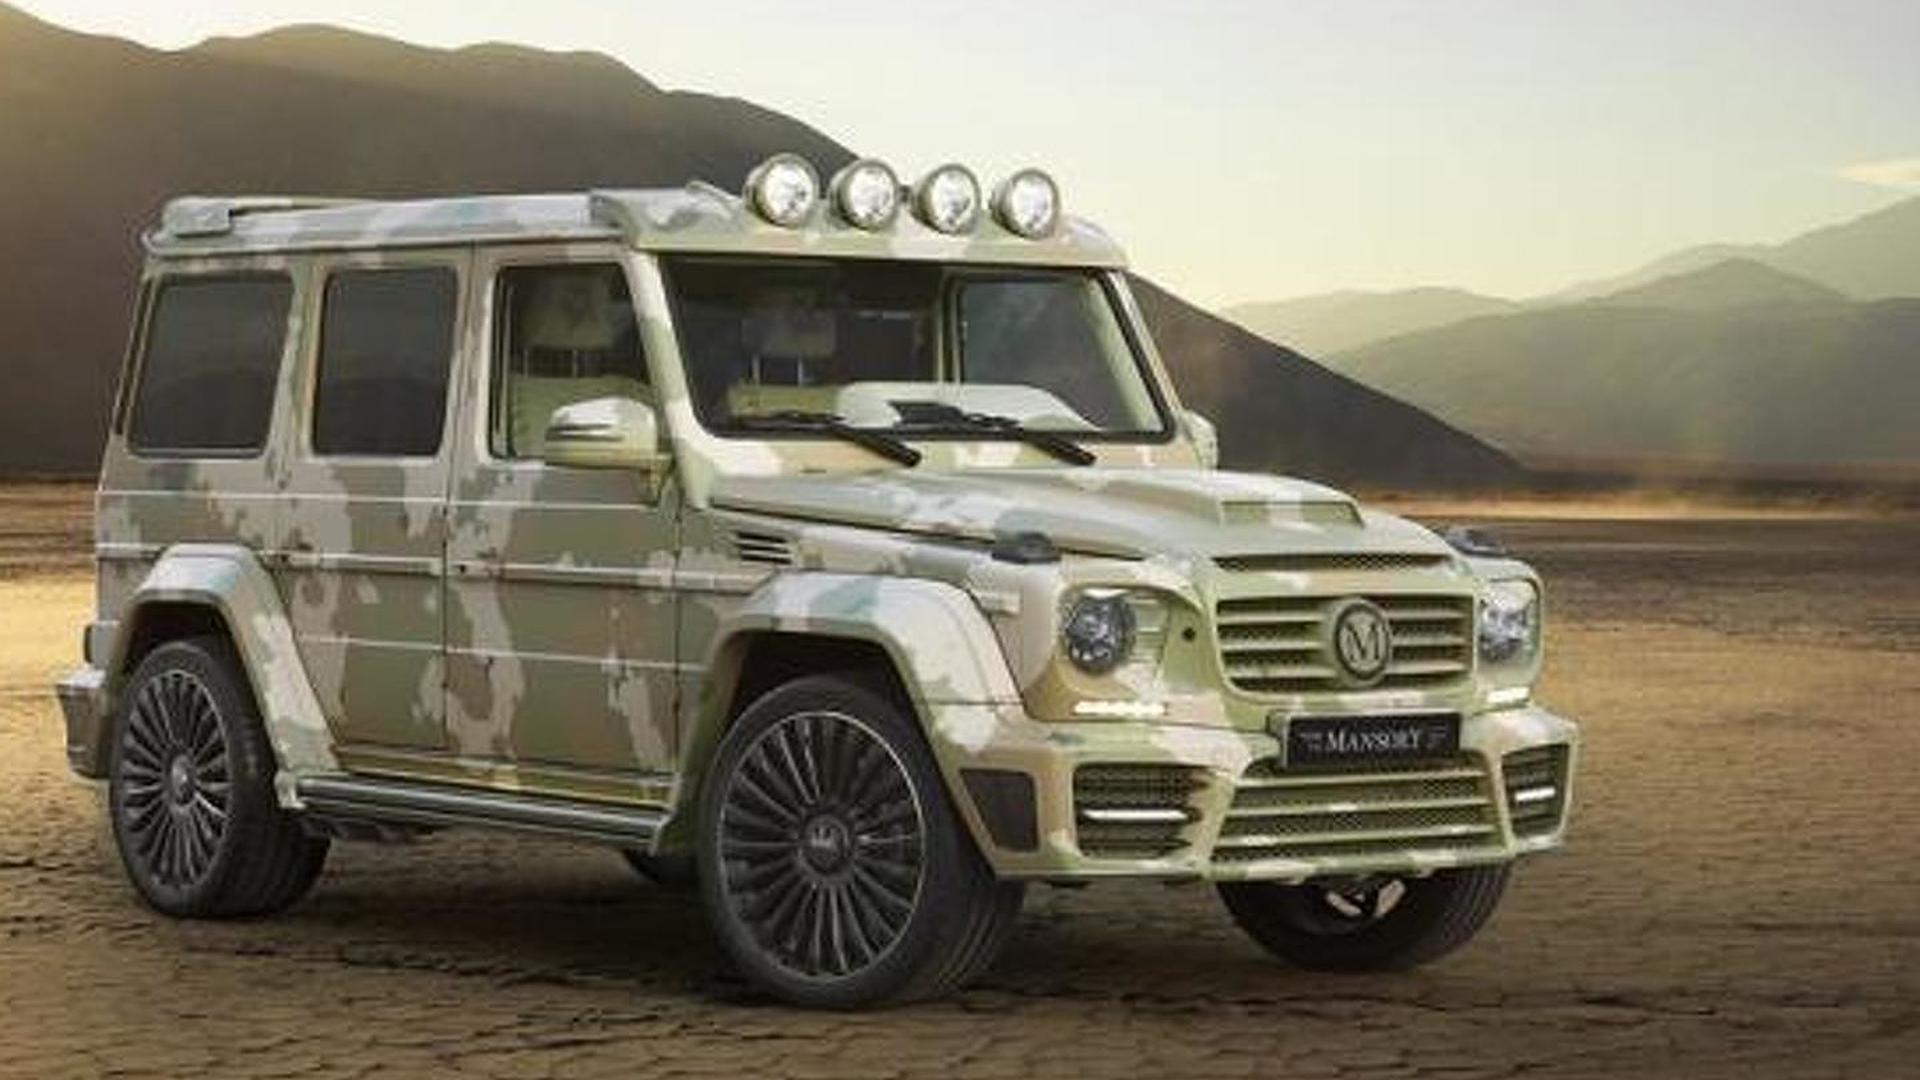 Mercedes Benz G63 AMG Sahara Edition By Mansory Is Unsurprisingly Flashy  And Expensive